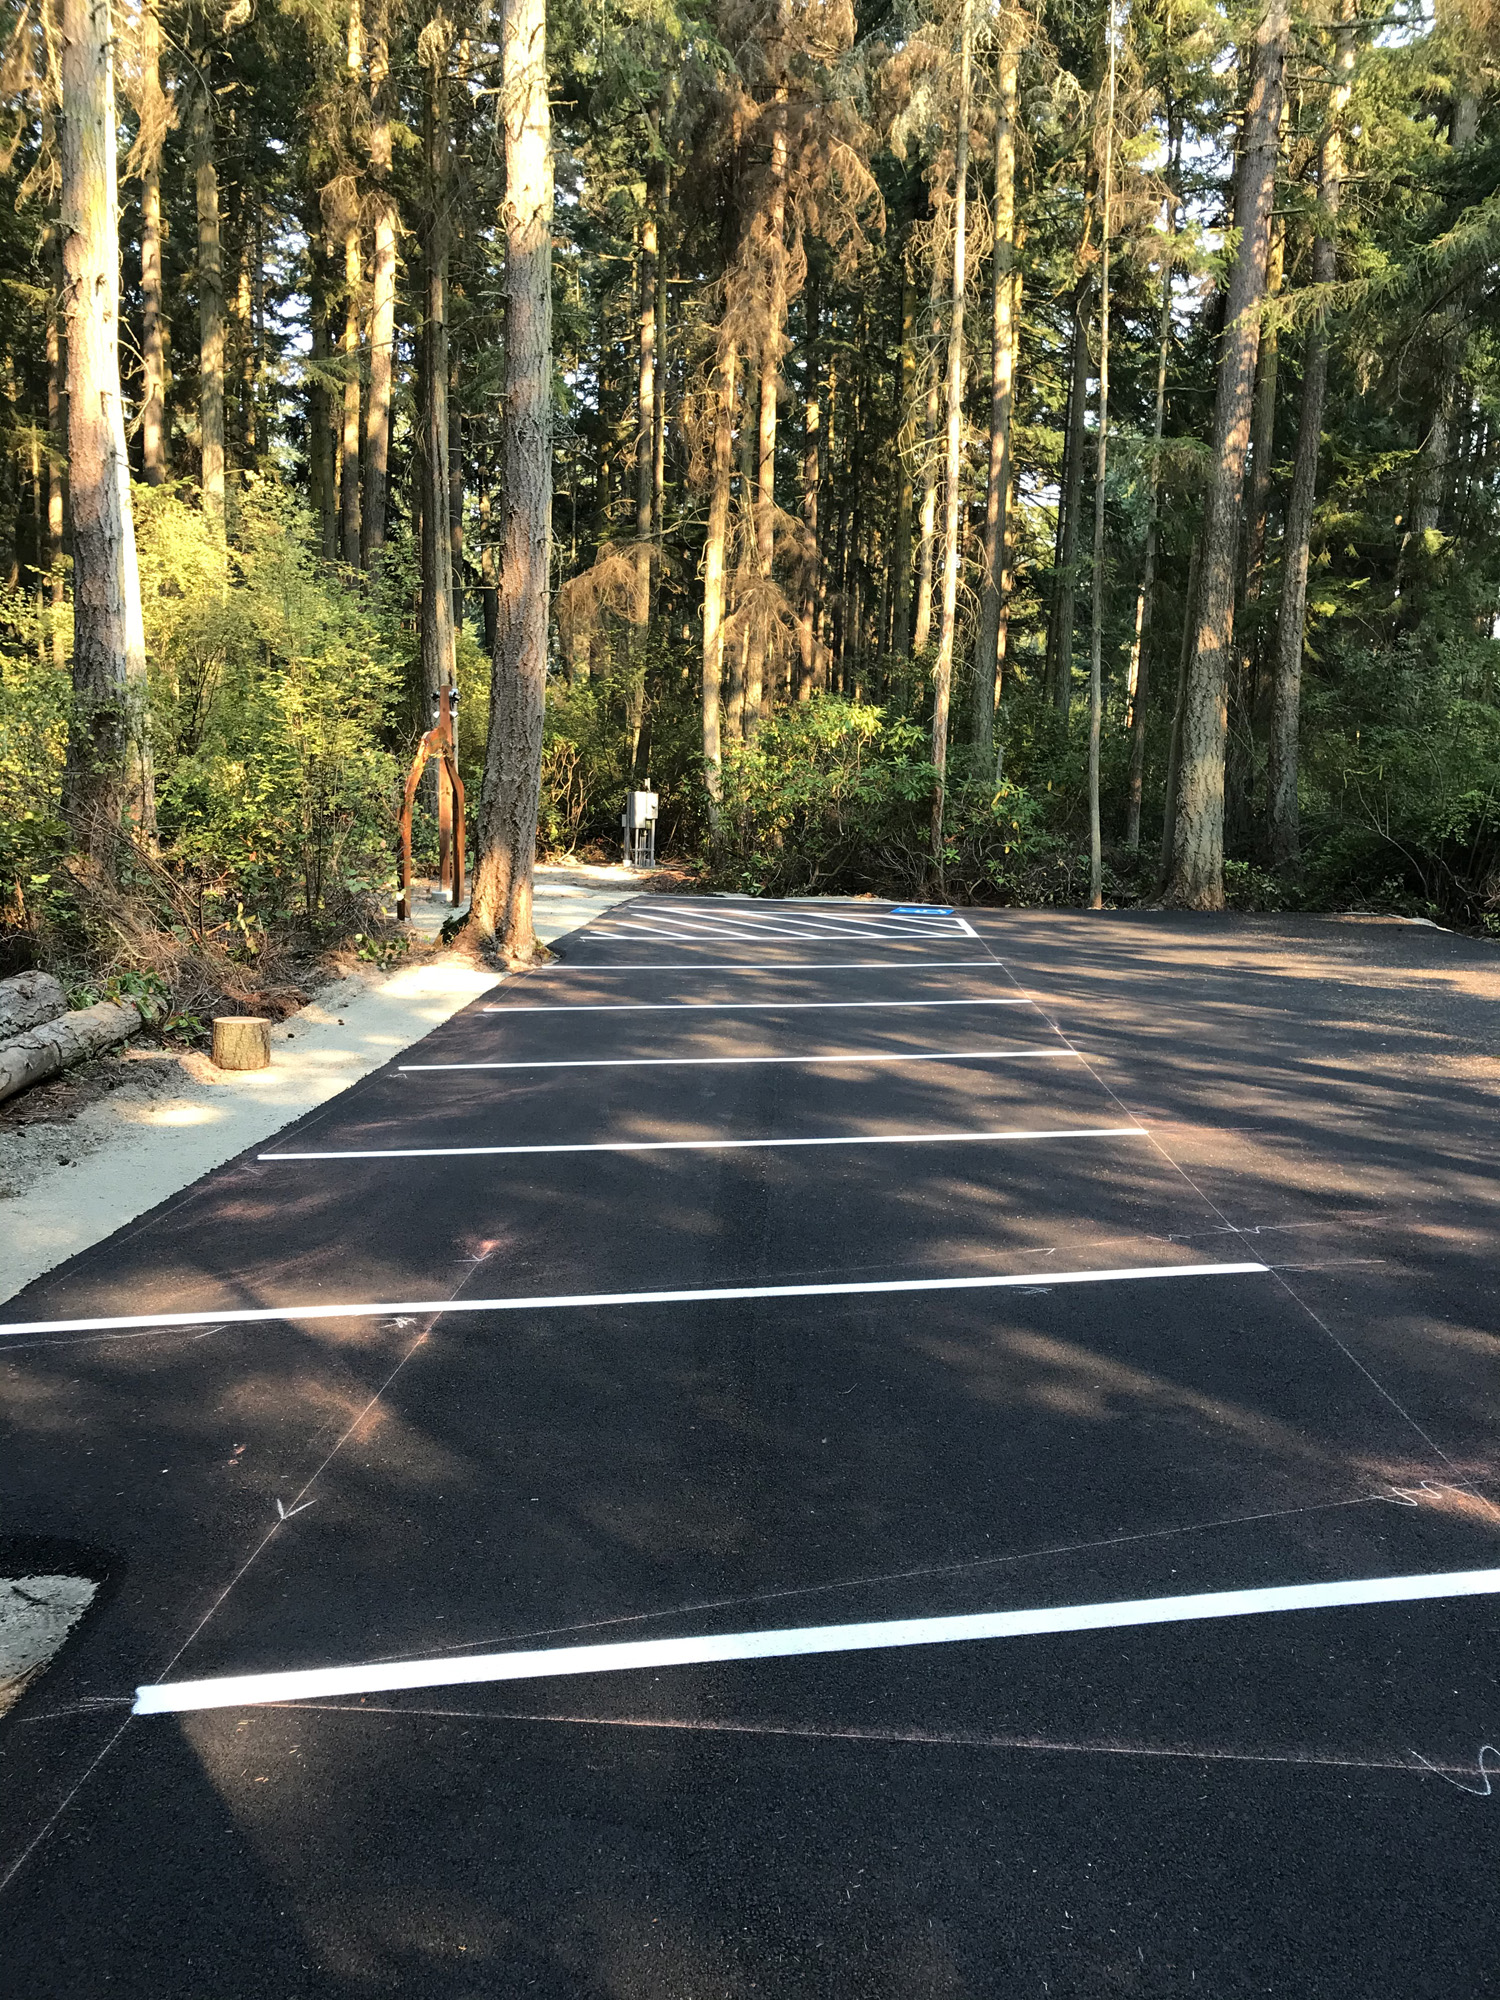 Parking lot striping at Price Sculpture Forest sculpture park in Coupeville on Whidbey Island